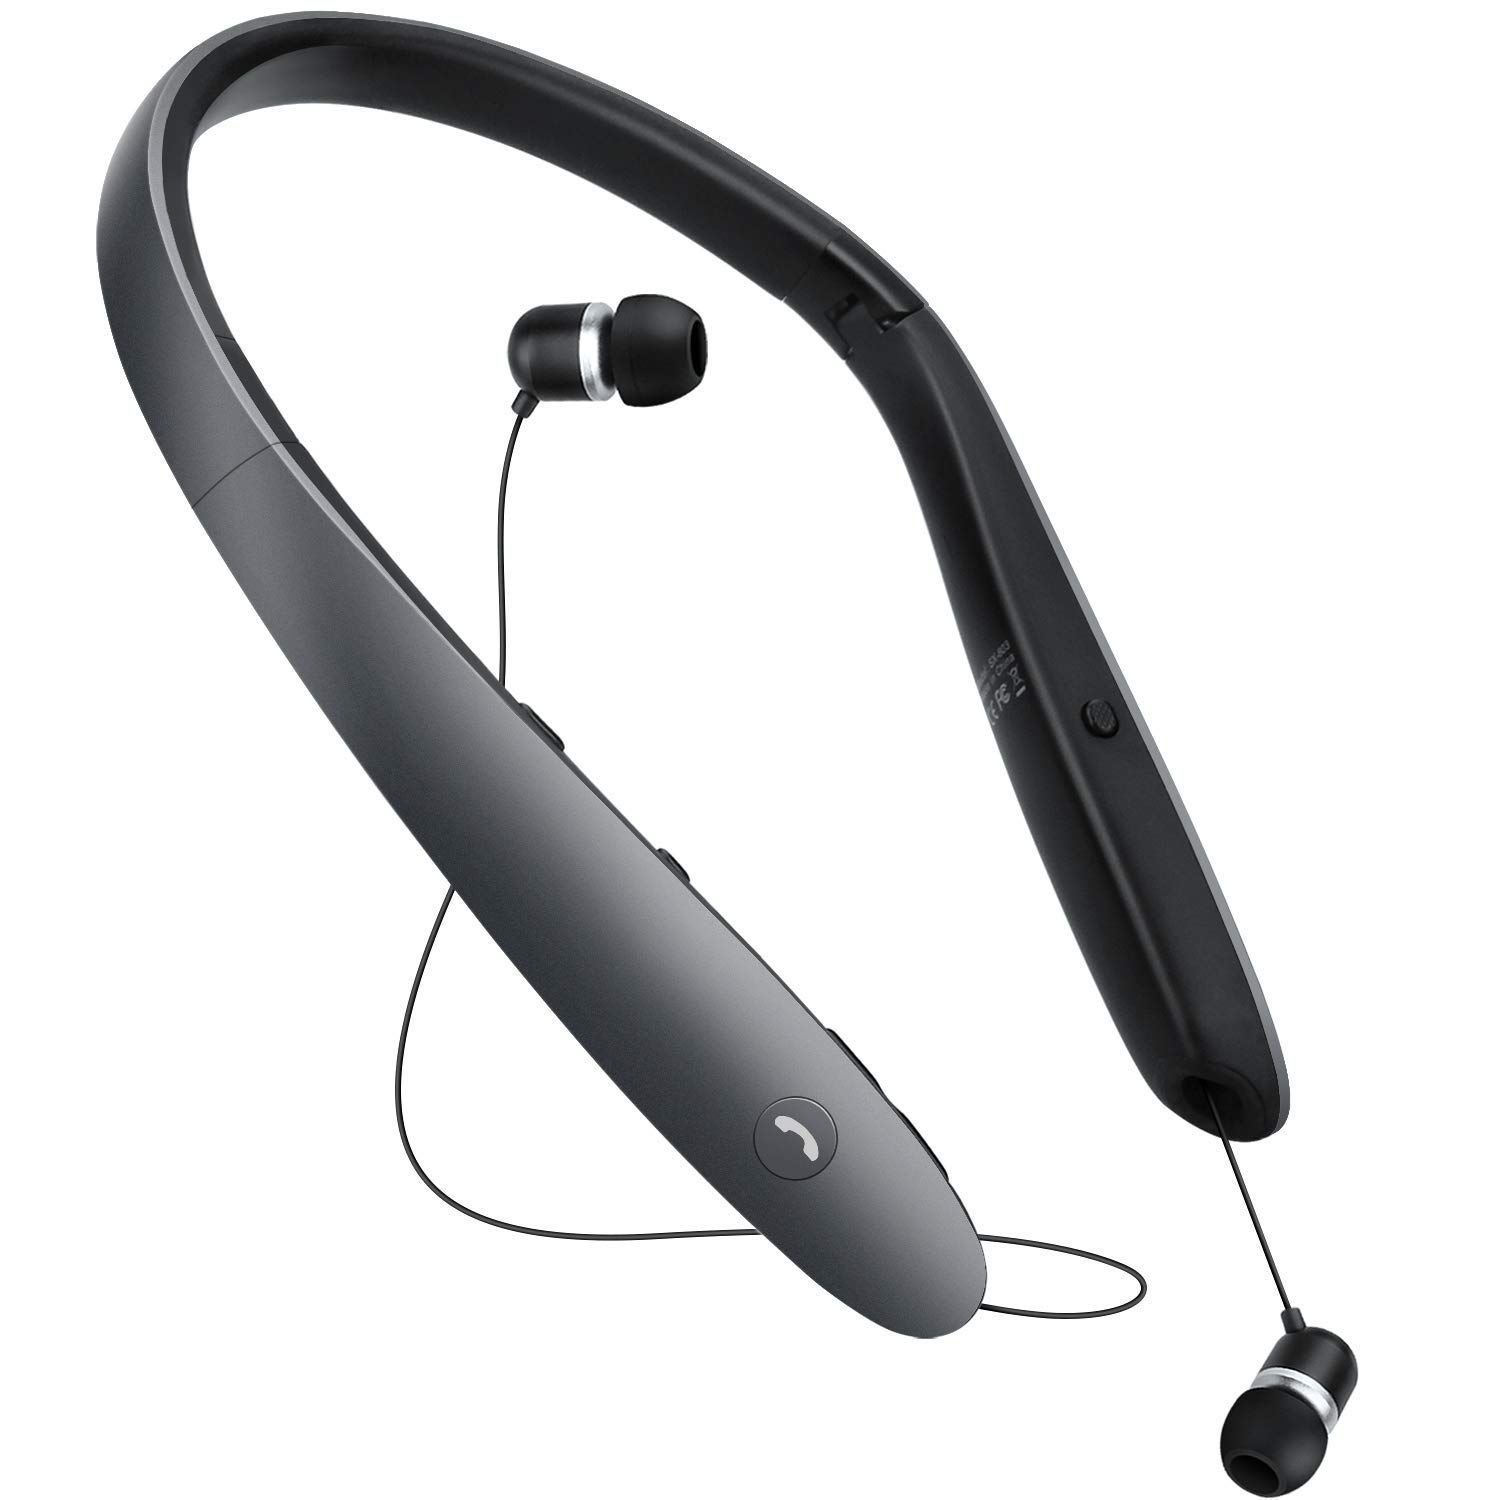 a9321ecdf10 Bluetooth Headphones Retractable Earbuds Neckband Foldable Neck Wireless  Bluetooth Headset Sweatproof Sports Noise Cancelling Microphone HD Stereo  Voice ...